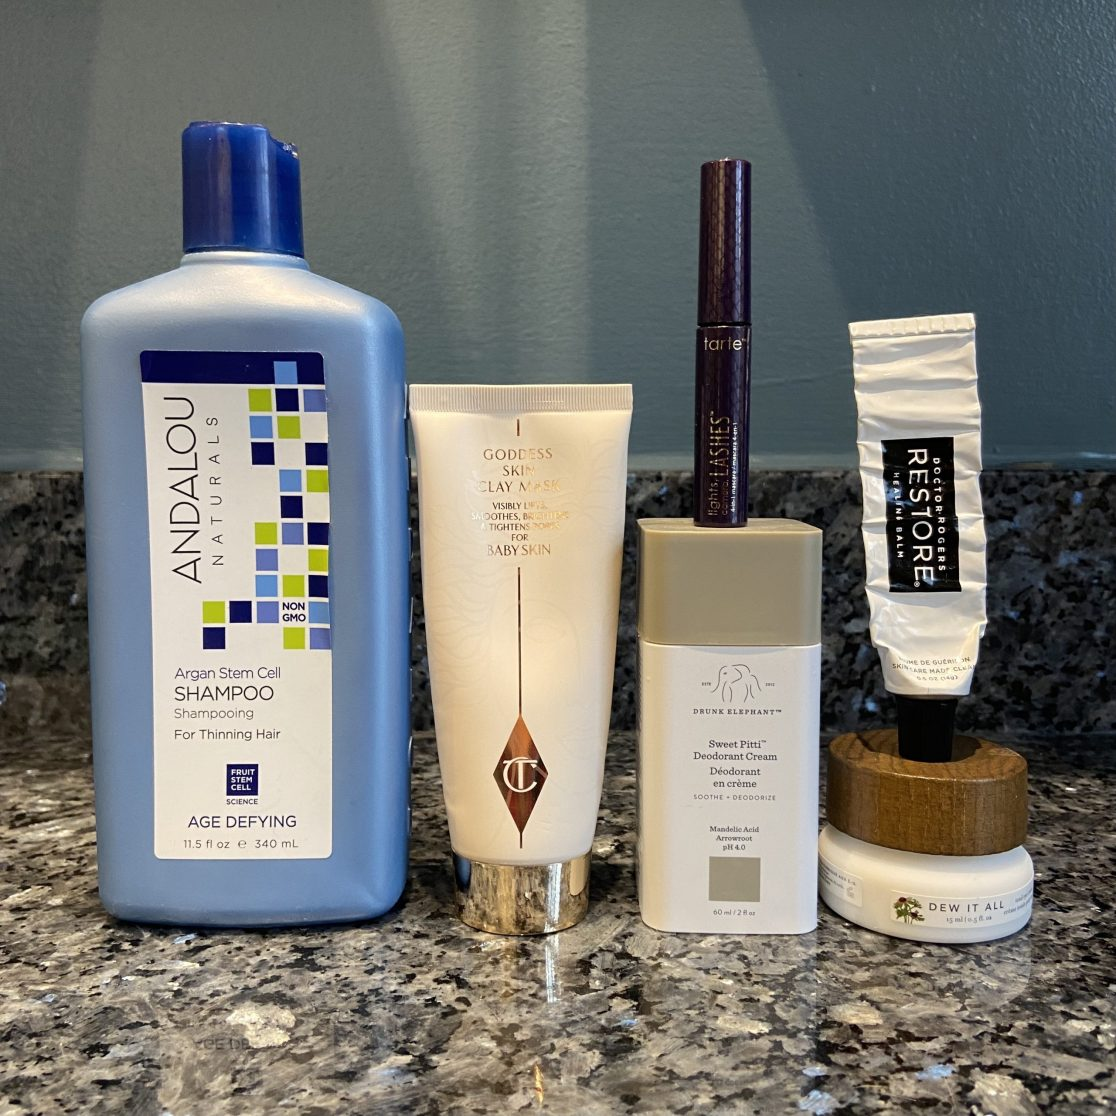 January beauty empties